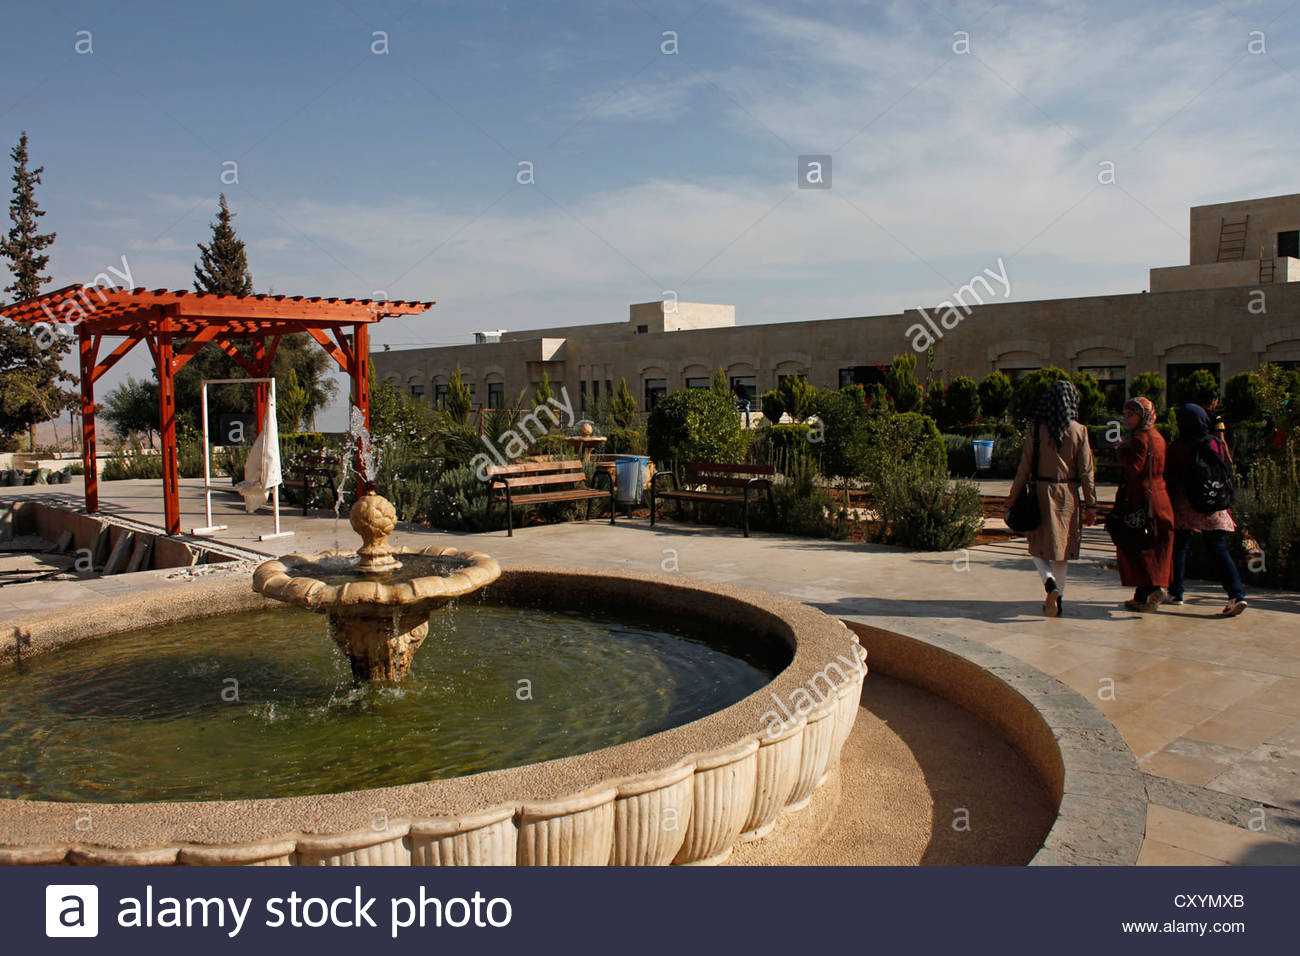 Al Quds university in Abu Dis a Palestinian town in the Jerusalem Governorate of the Palestinian National Authority - Stock Image